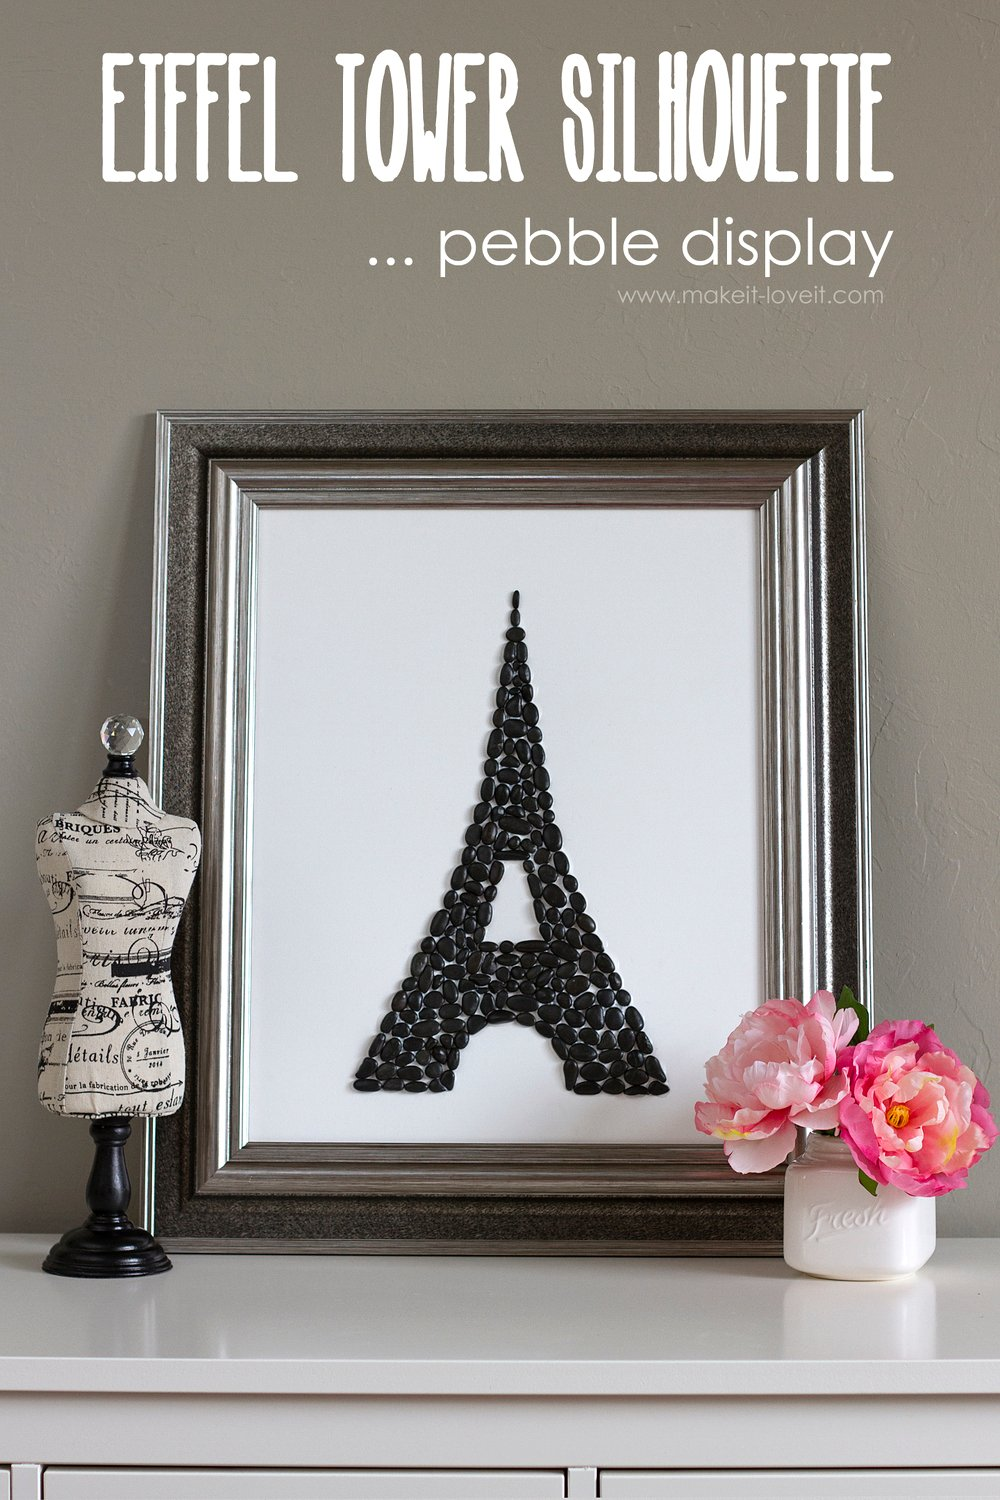 Eiffel tower silhouette — pebble display